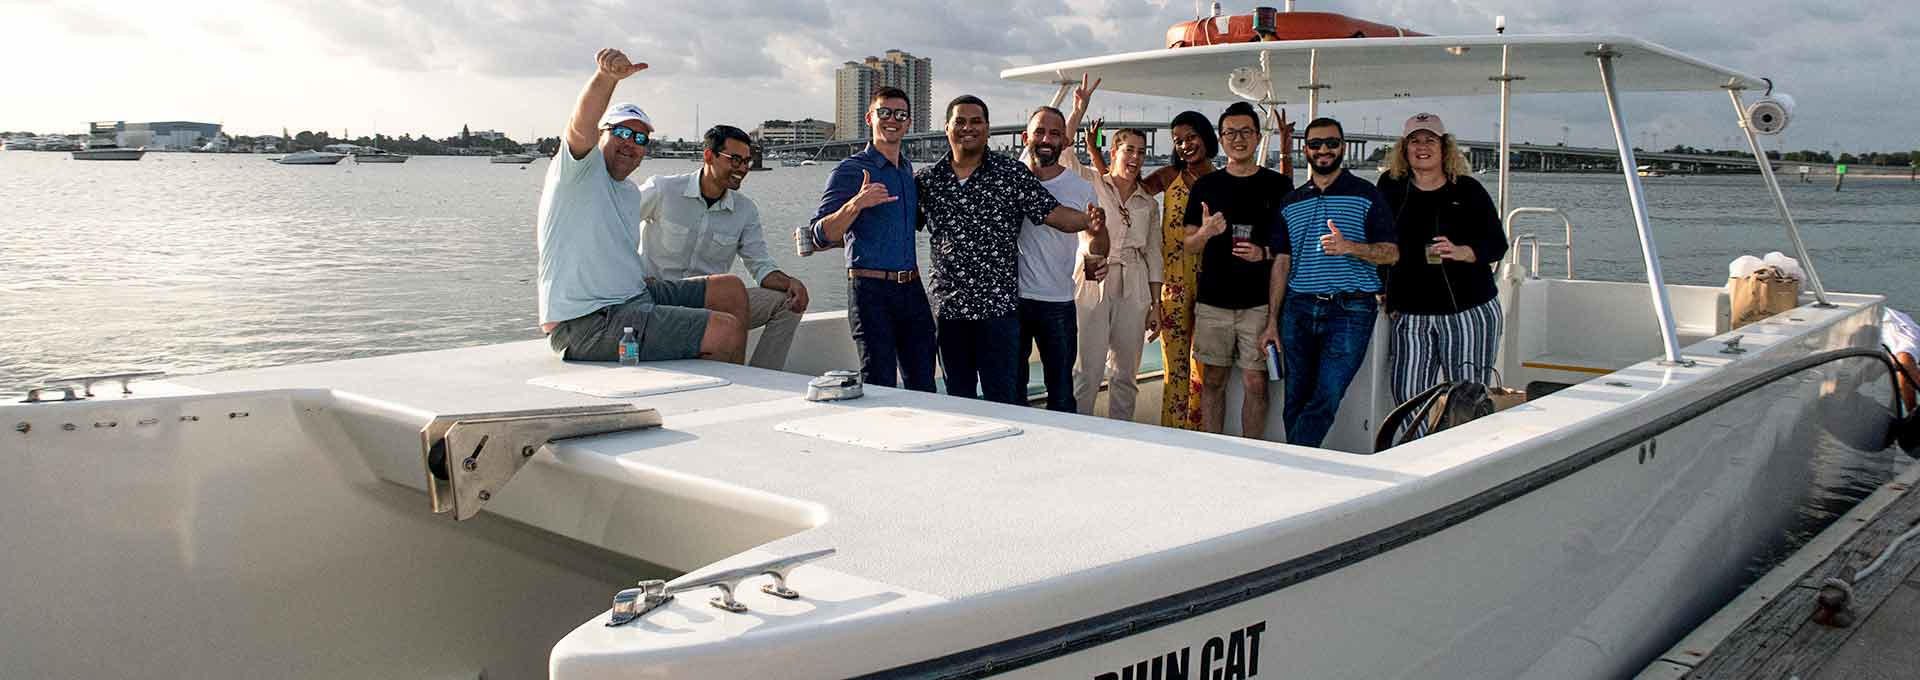 Dolphin Cat catamaran with happy people